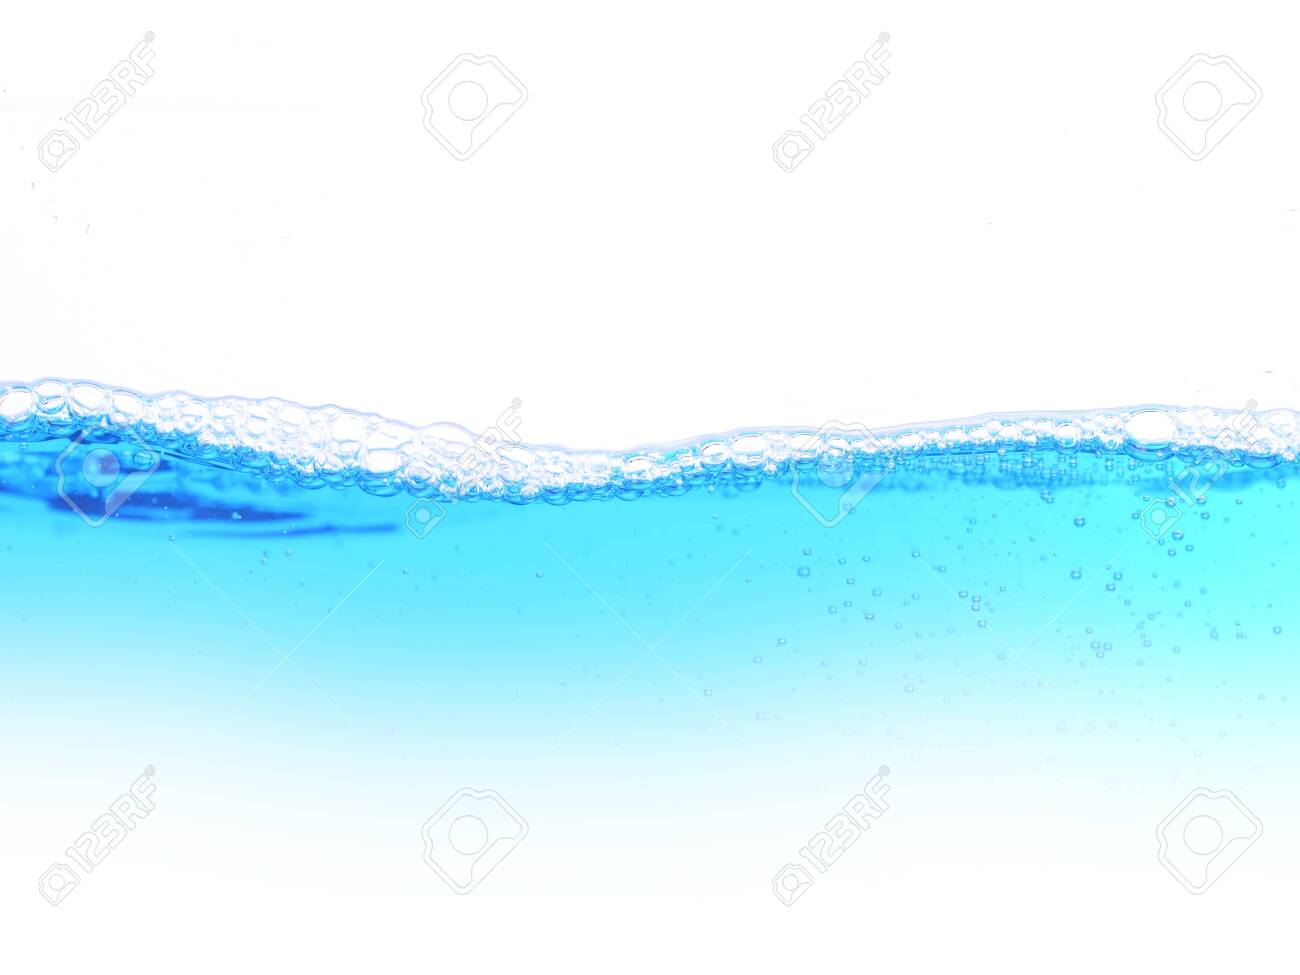 blue water with bubbles on a white background - 140507890